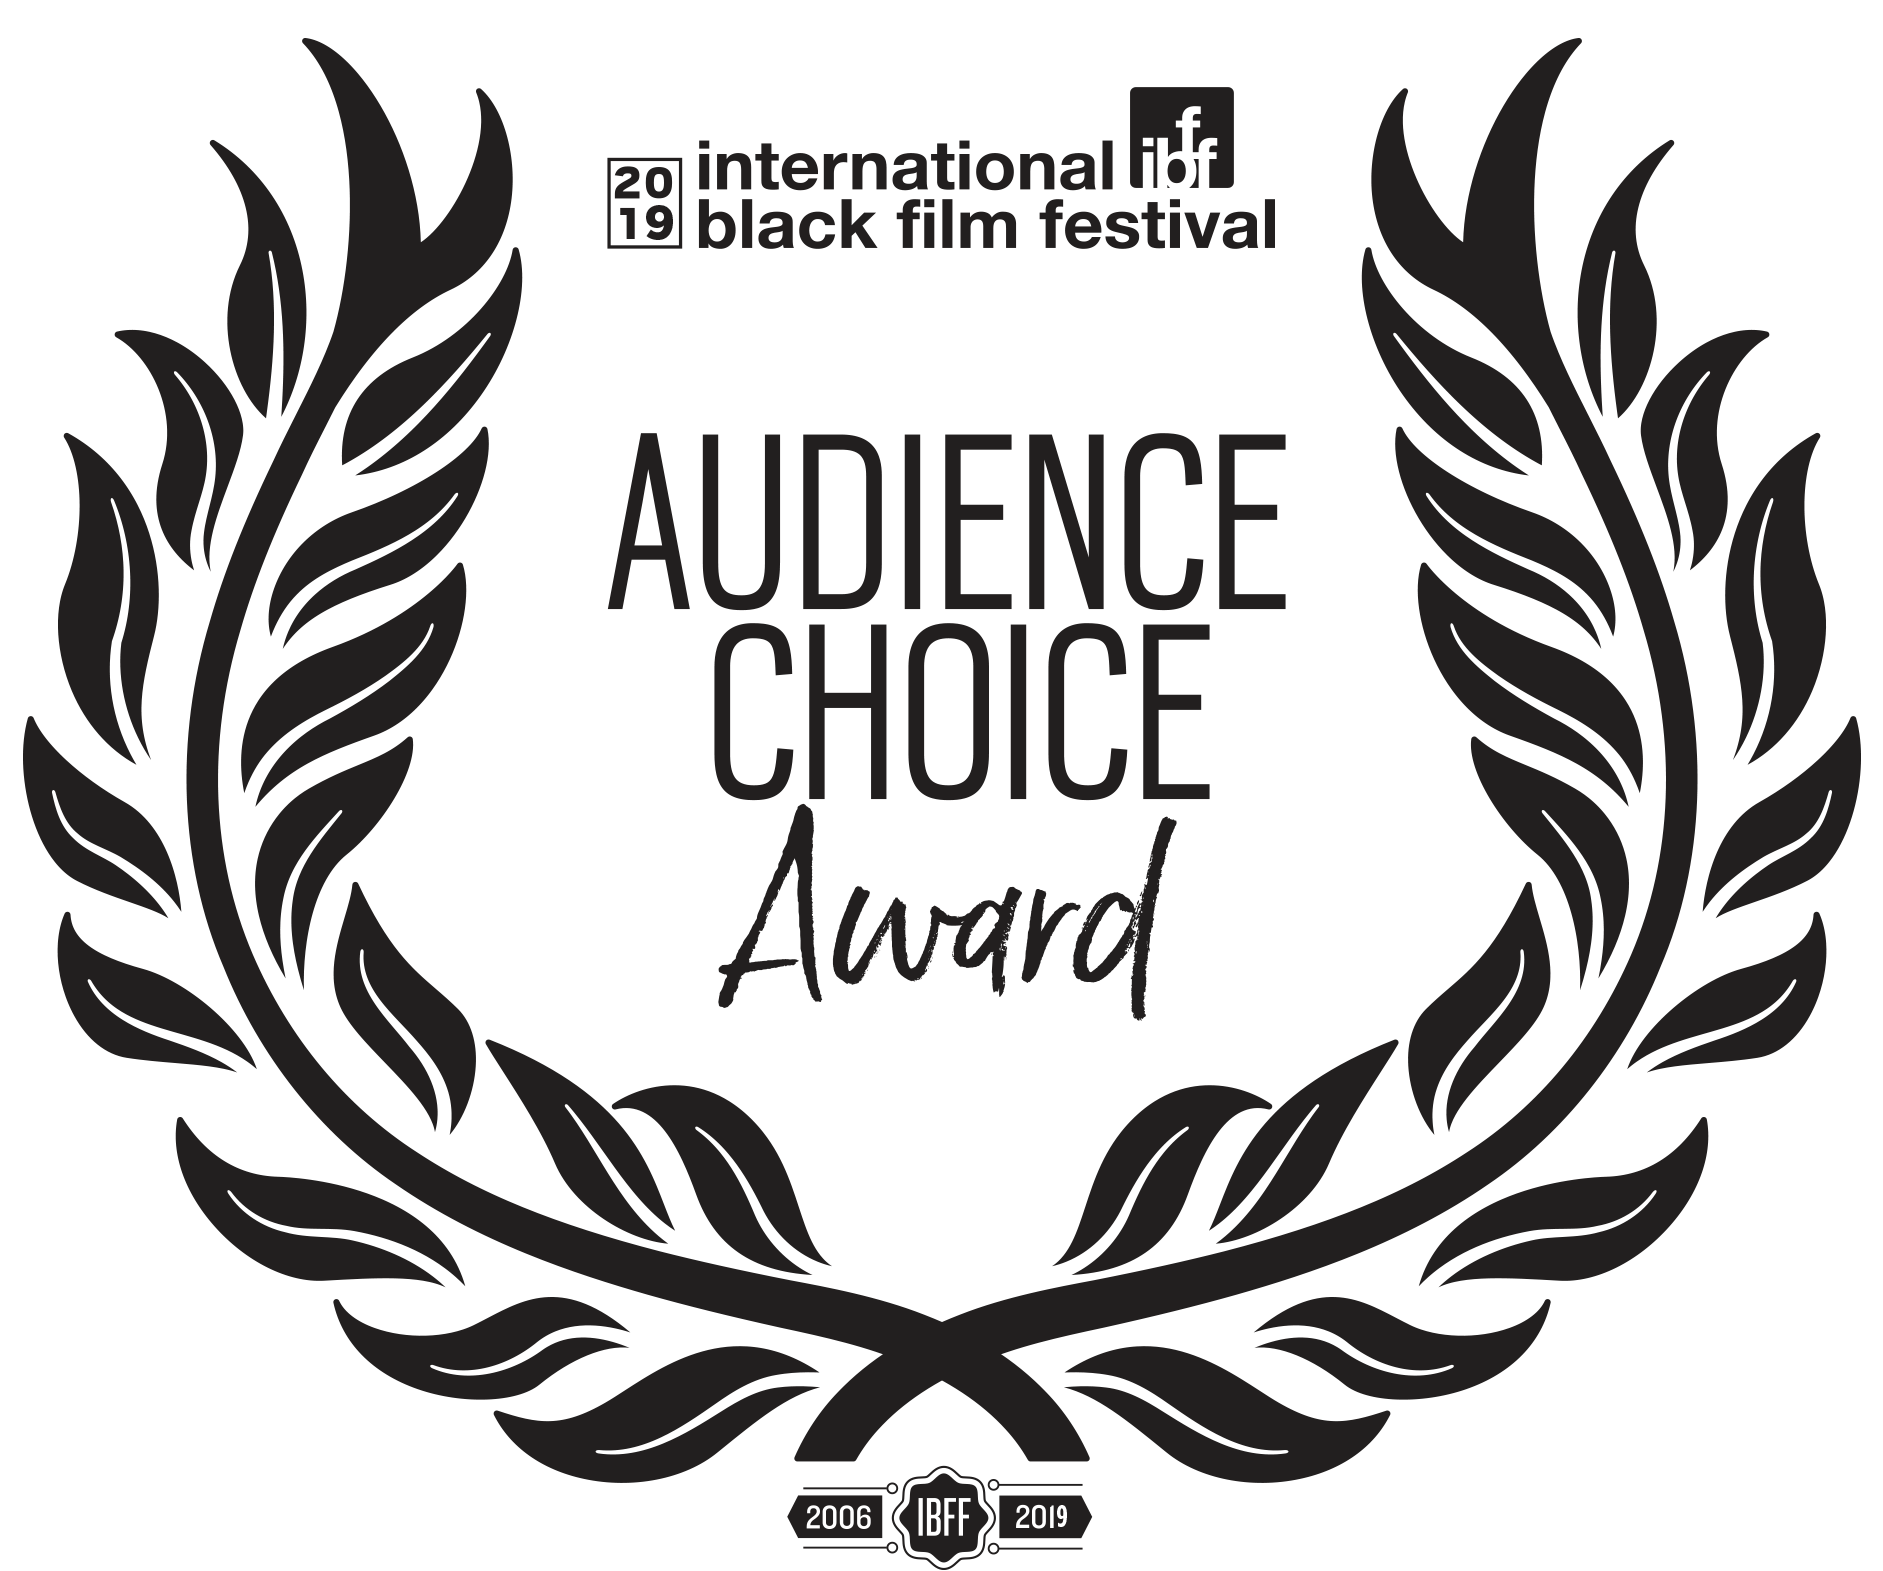 AUDIENCE CHOICE AWARD_BLACK.png